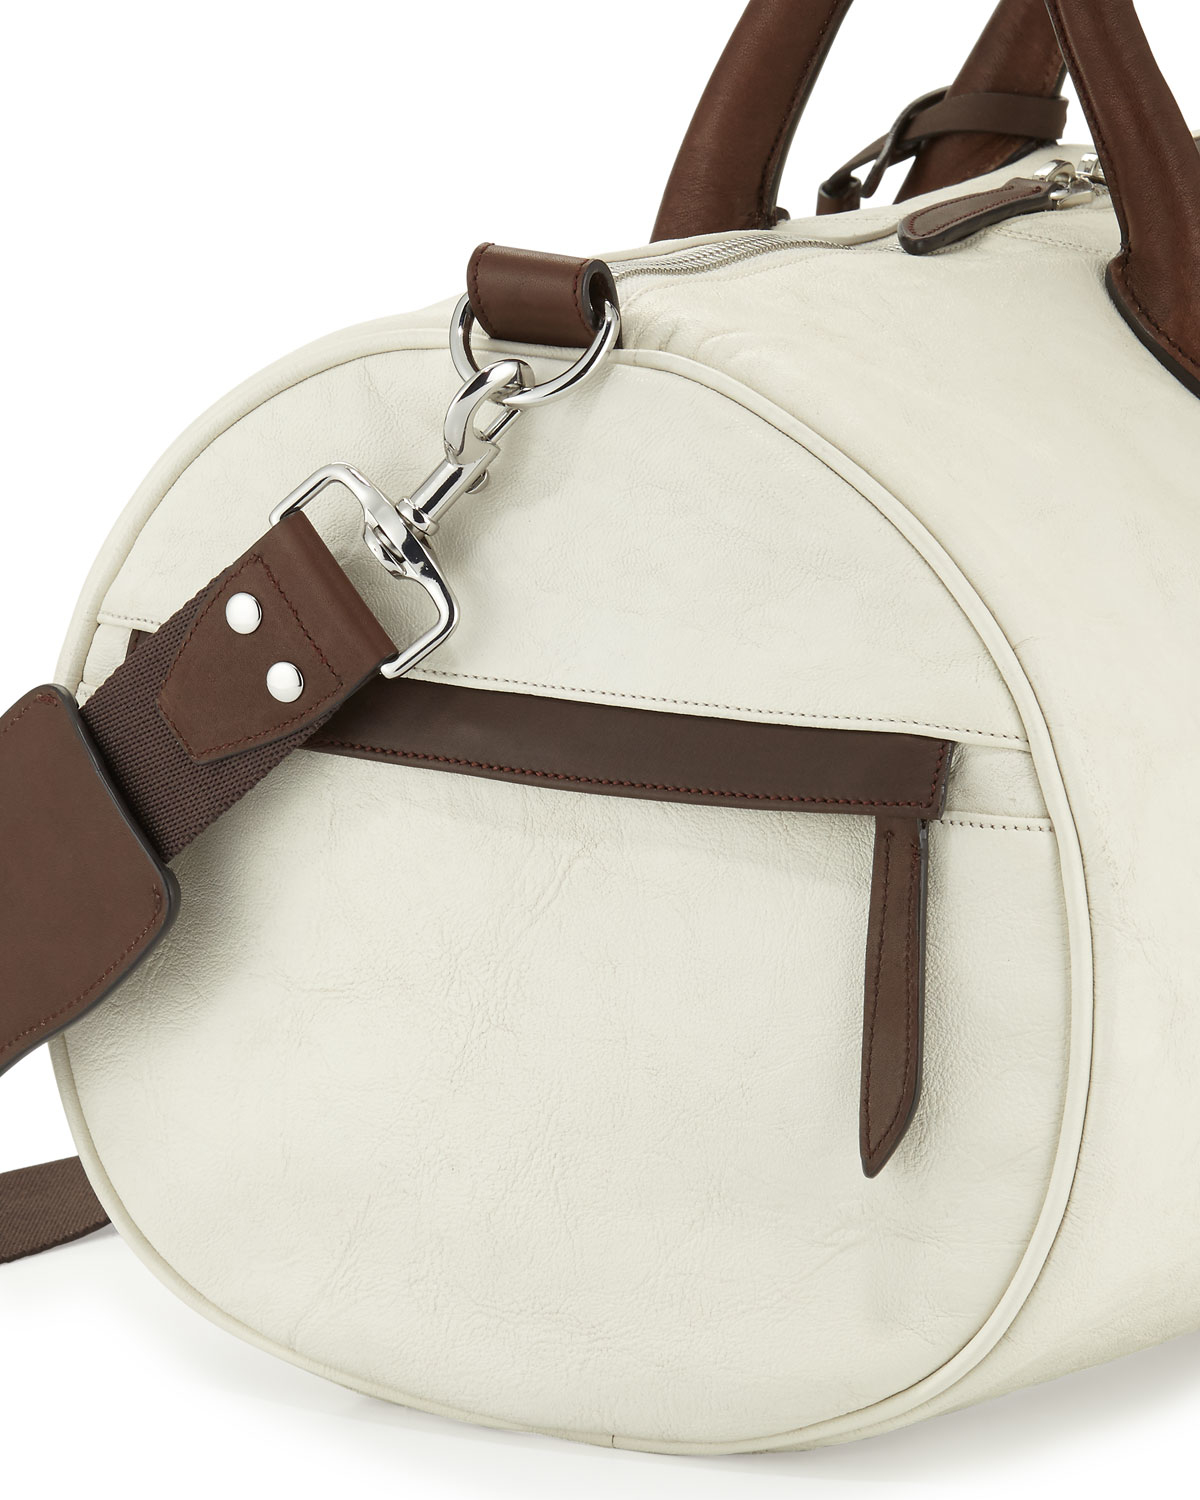 07e84f5d49 Lyst - Cole Haan Two-tone Leather Duffle Bag in White for Men